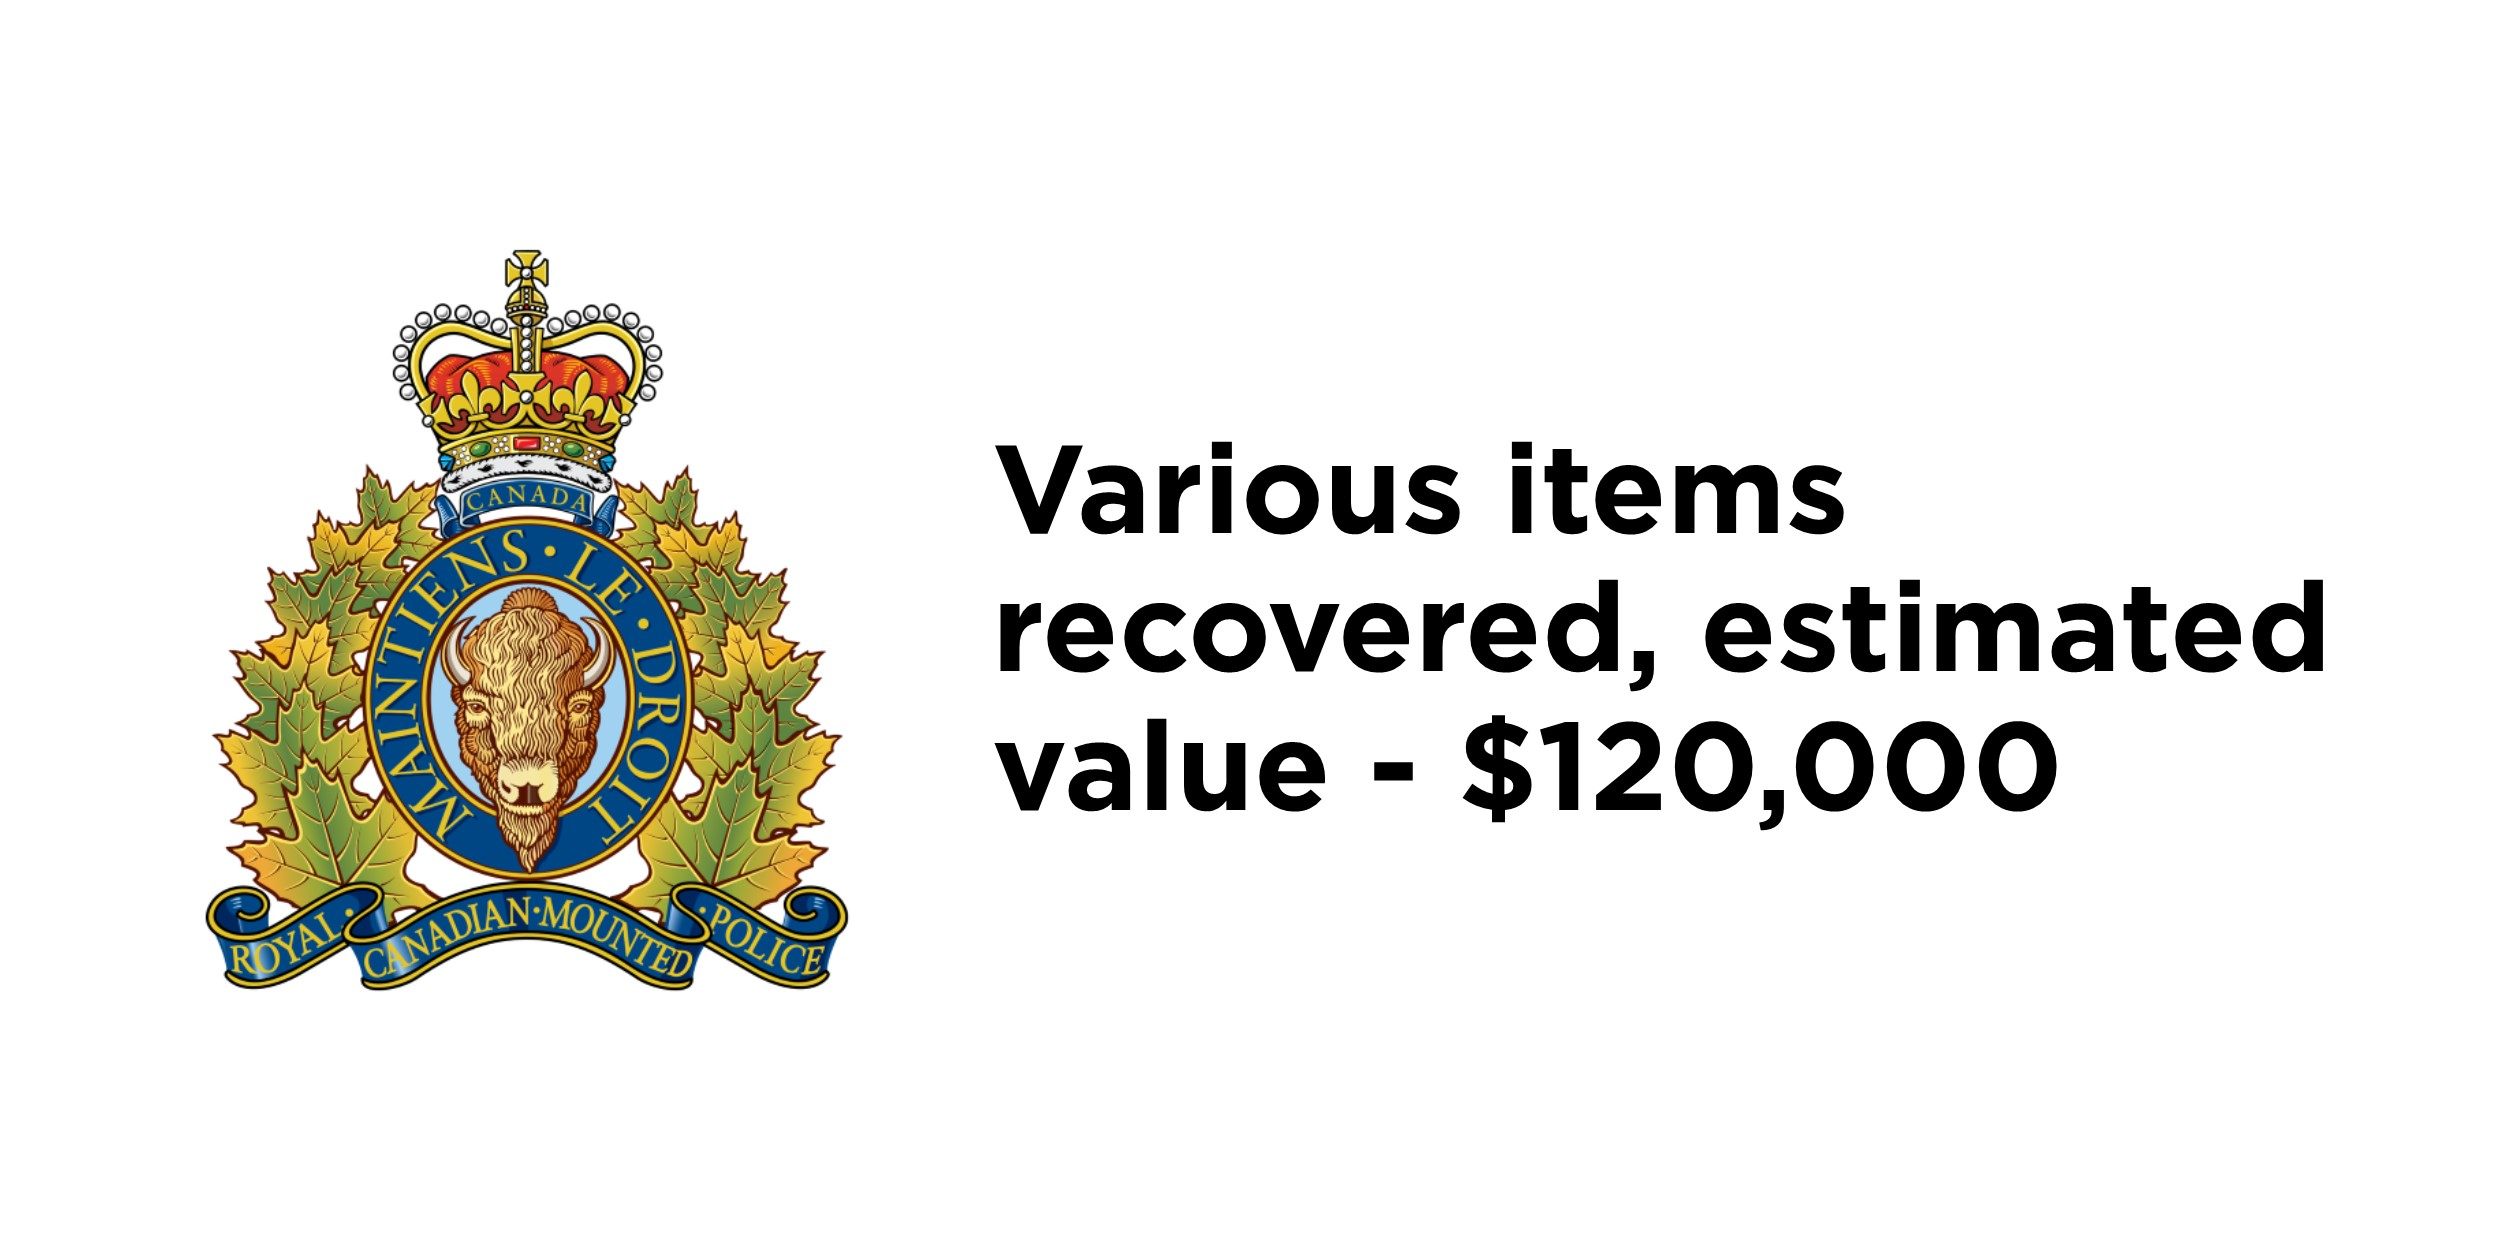 RCMP Search warrant